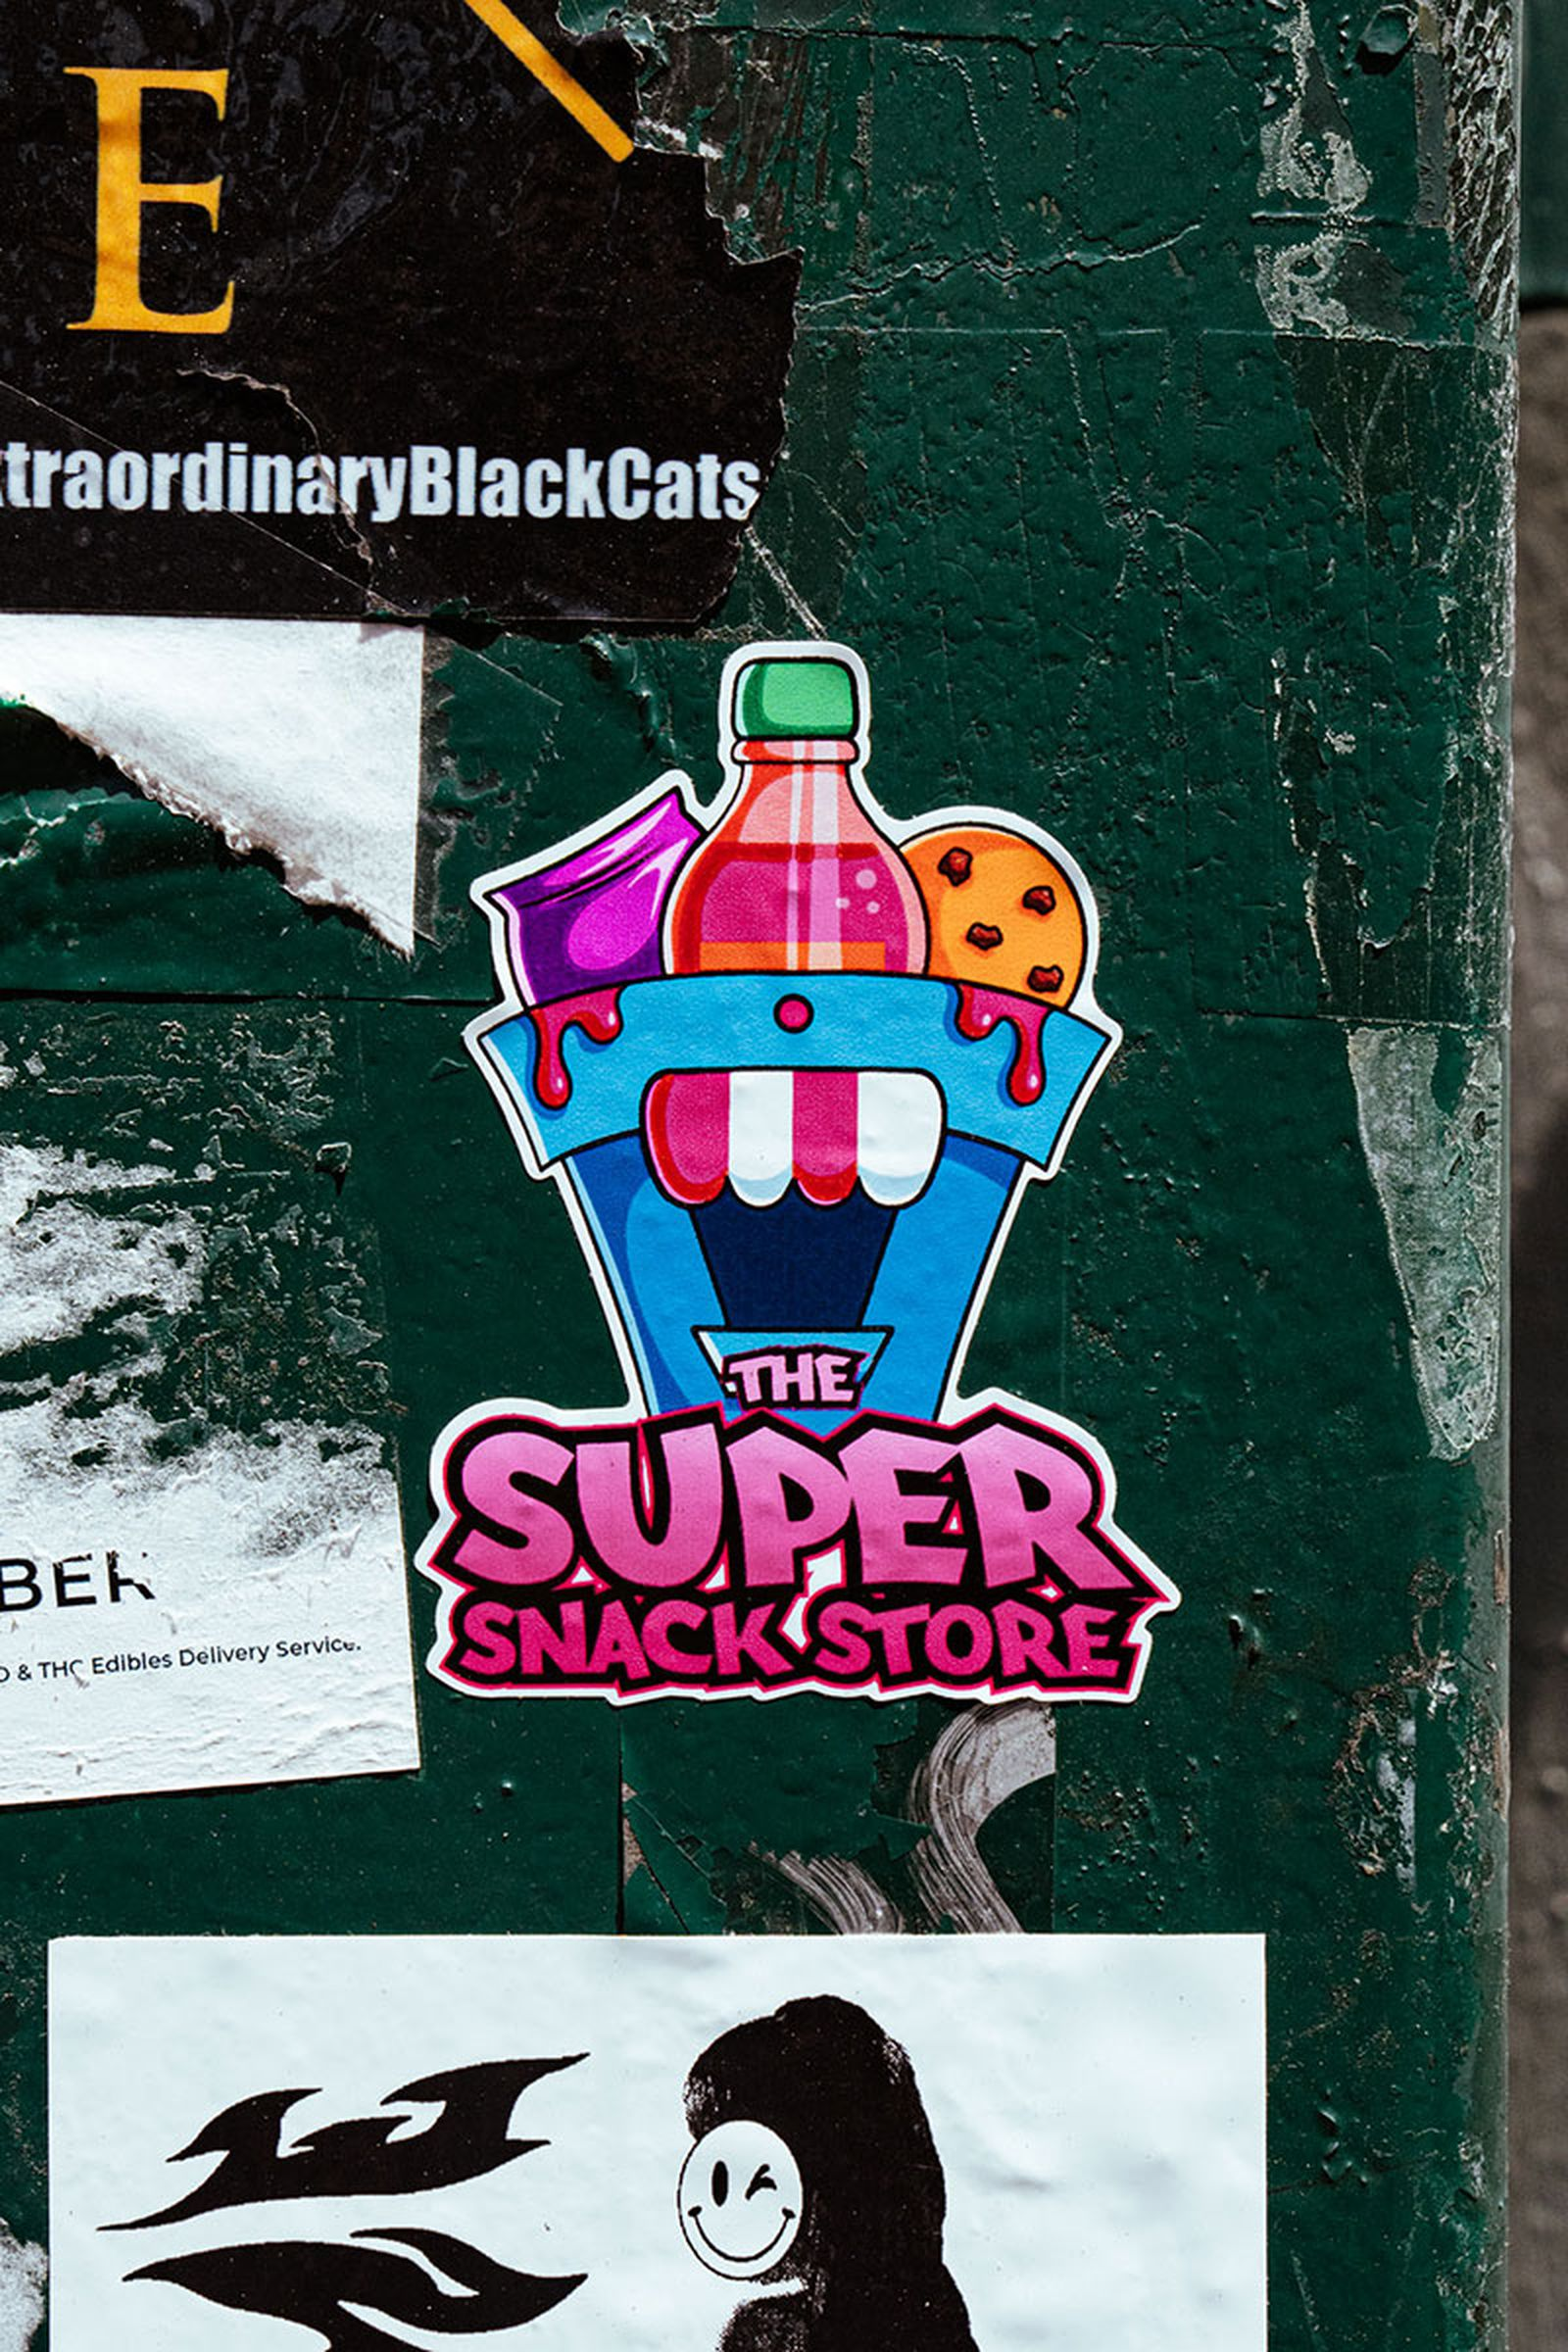 hype culture coming snack game The Super Snack Store